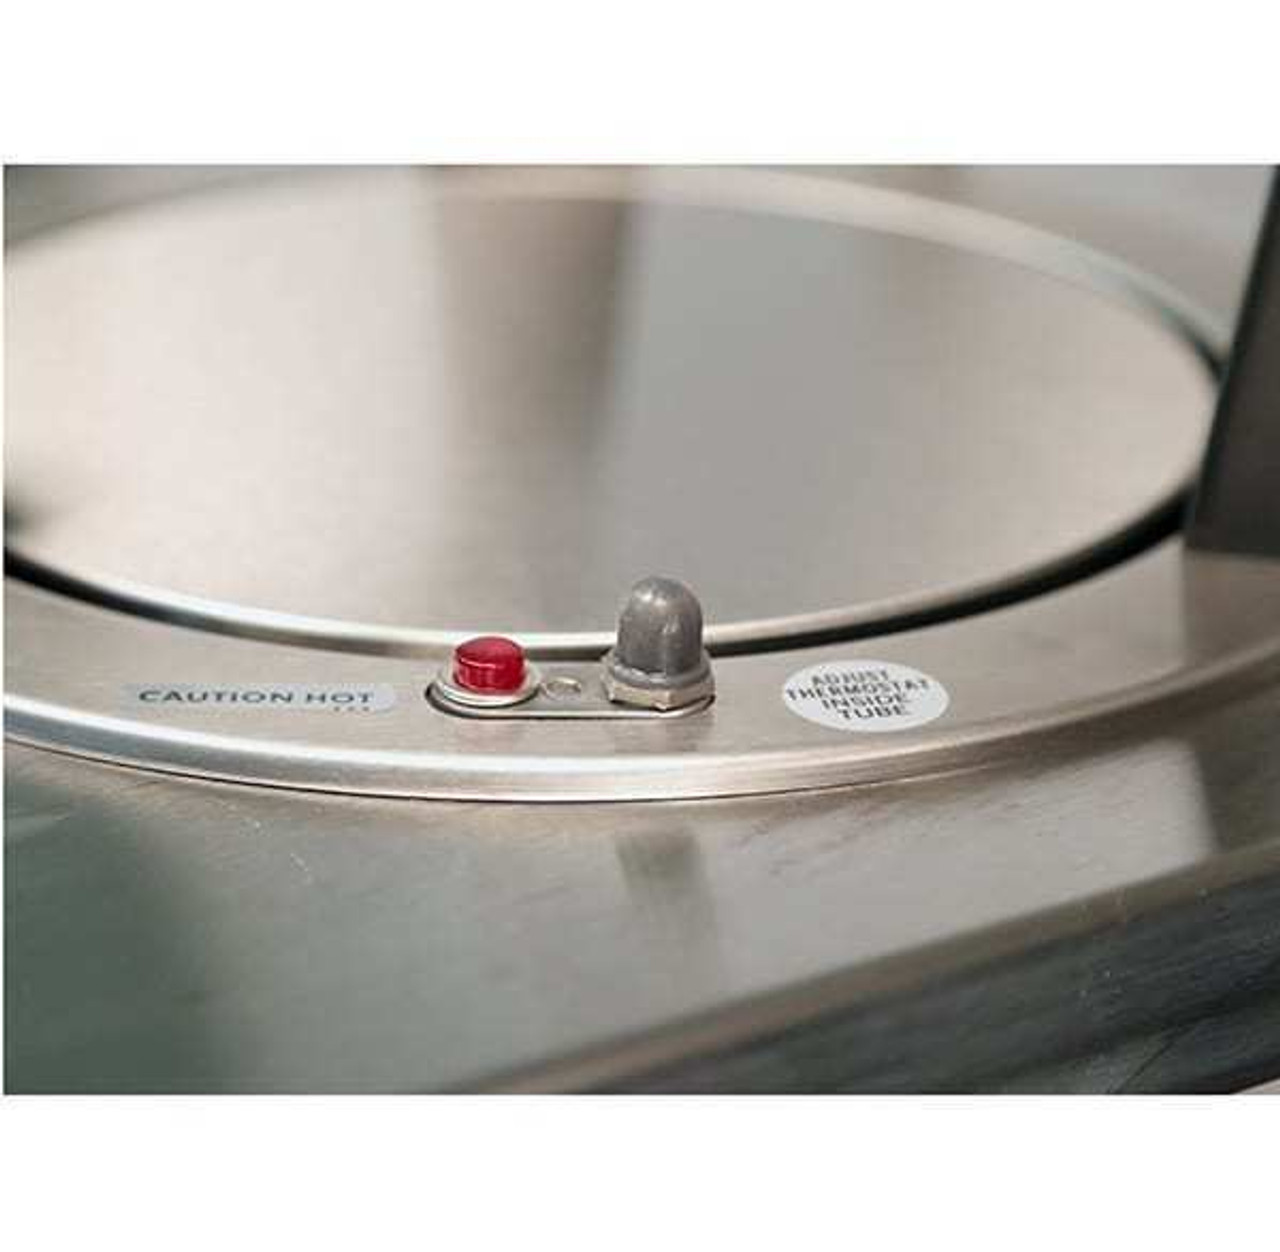 """Dish Dispenser, heated, cabinet style, enclosed base, mobile, (2) self-leveling dish dispensing tubes, 10-1/4"""" to 11"""" diameter dish size, stainless steel construction, 4"""" Lake-Glide® swivel casters (2) with brakes, 6' coiled cord with NEMA 5-15P, NSF, UL, Made in USA"""